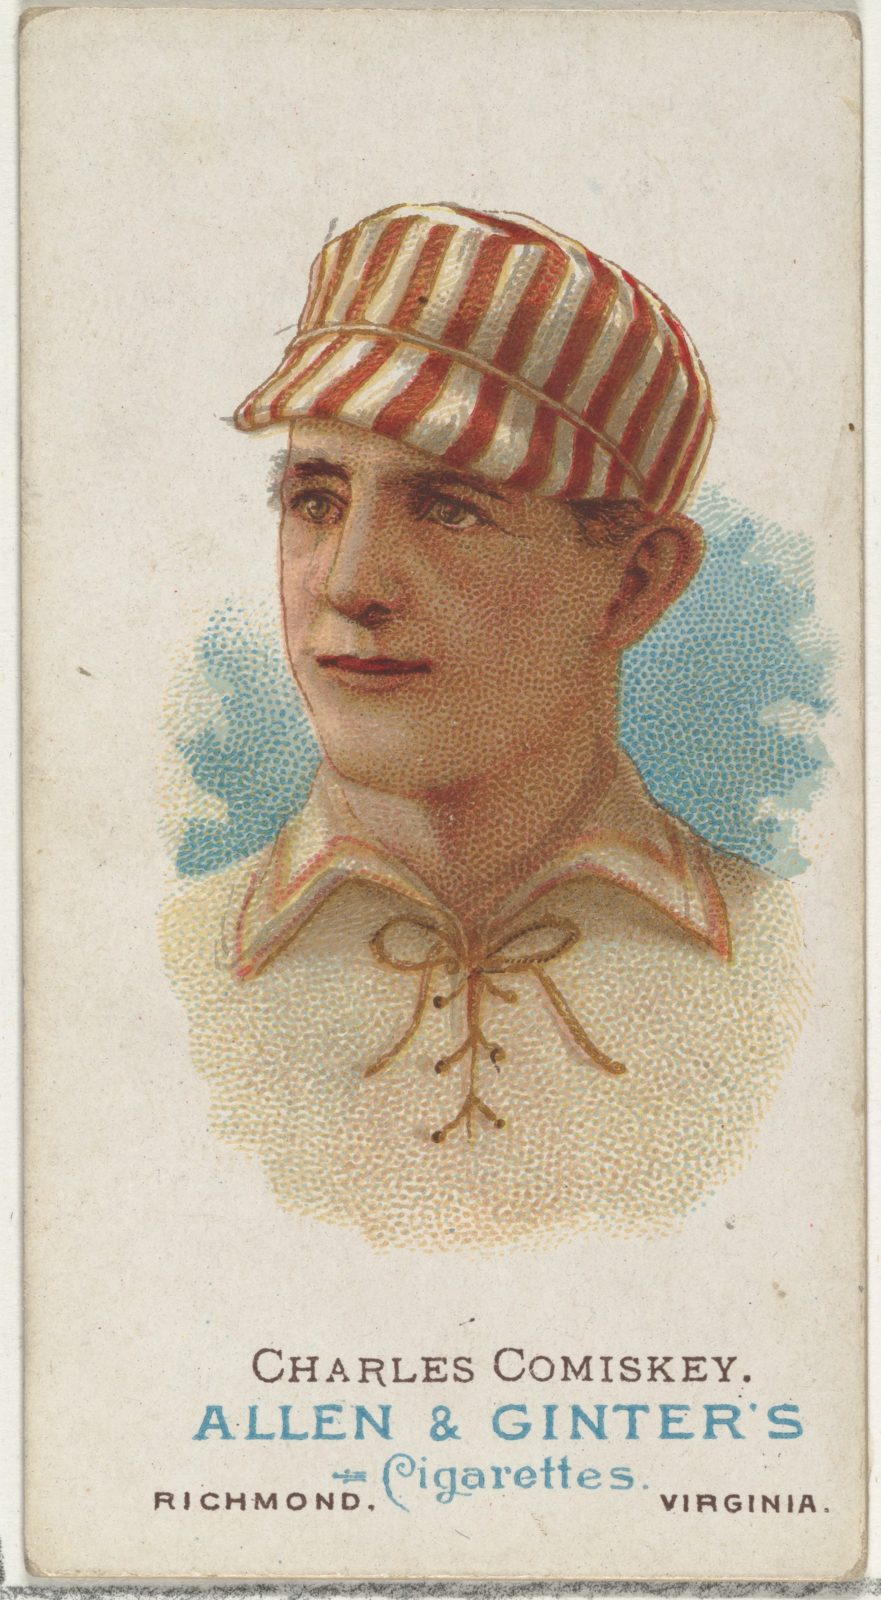 Charles Comiskey, Baseball Player, from World's Champions, Series 1 (N28) for Allen & Ginter Cigarettes